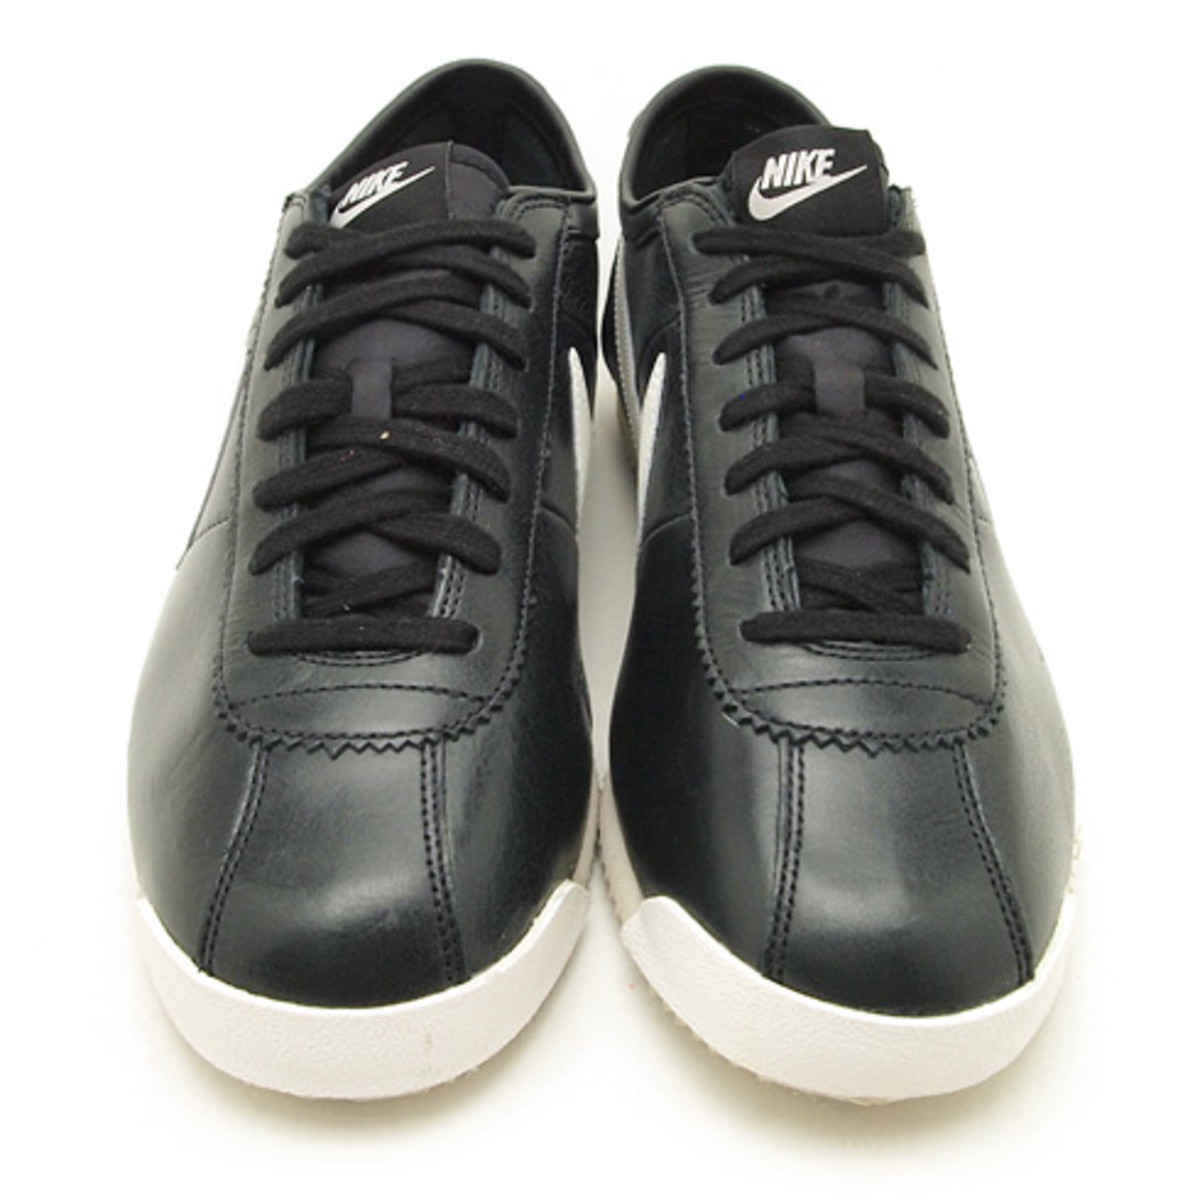 nike-cortez-classic-og-leather-18